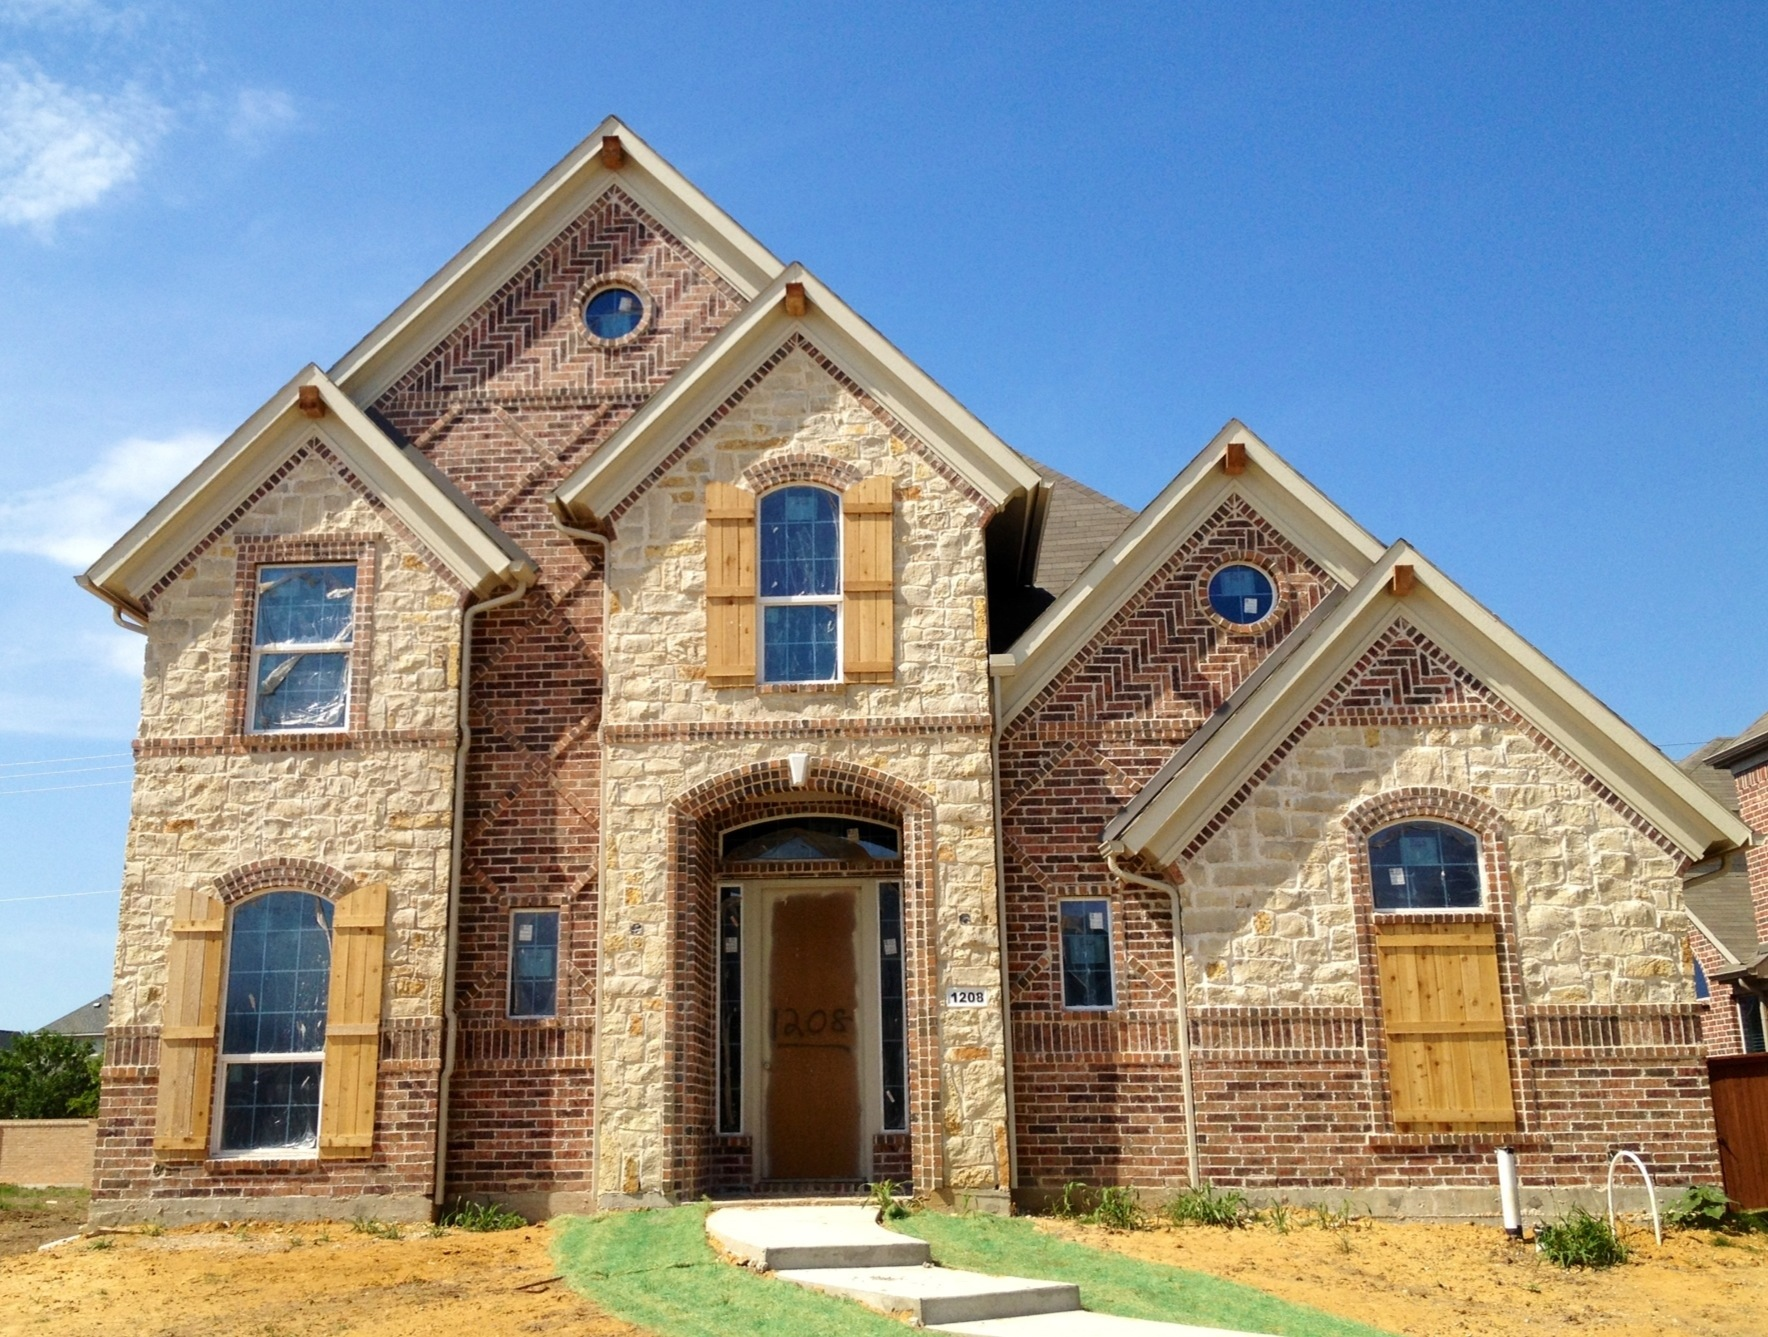 Landon homes in richwoods hollow model near completion - Model homes near me ...